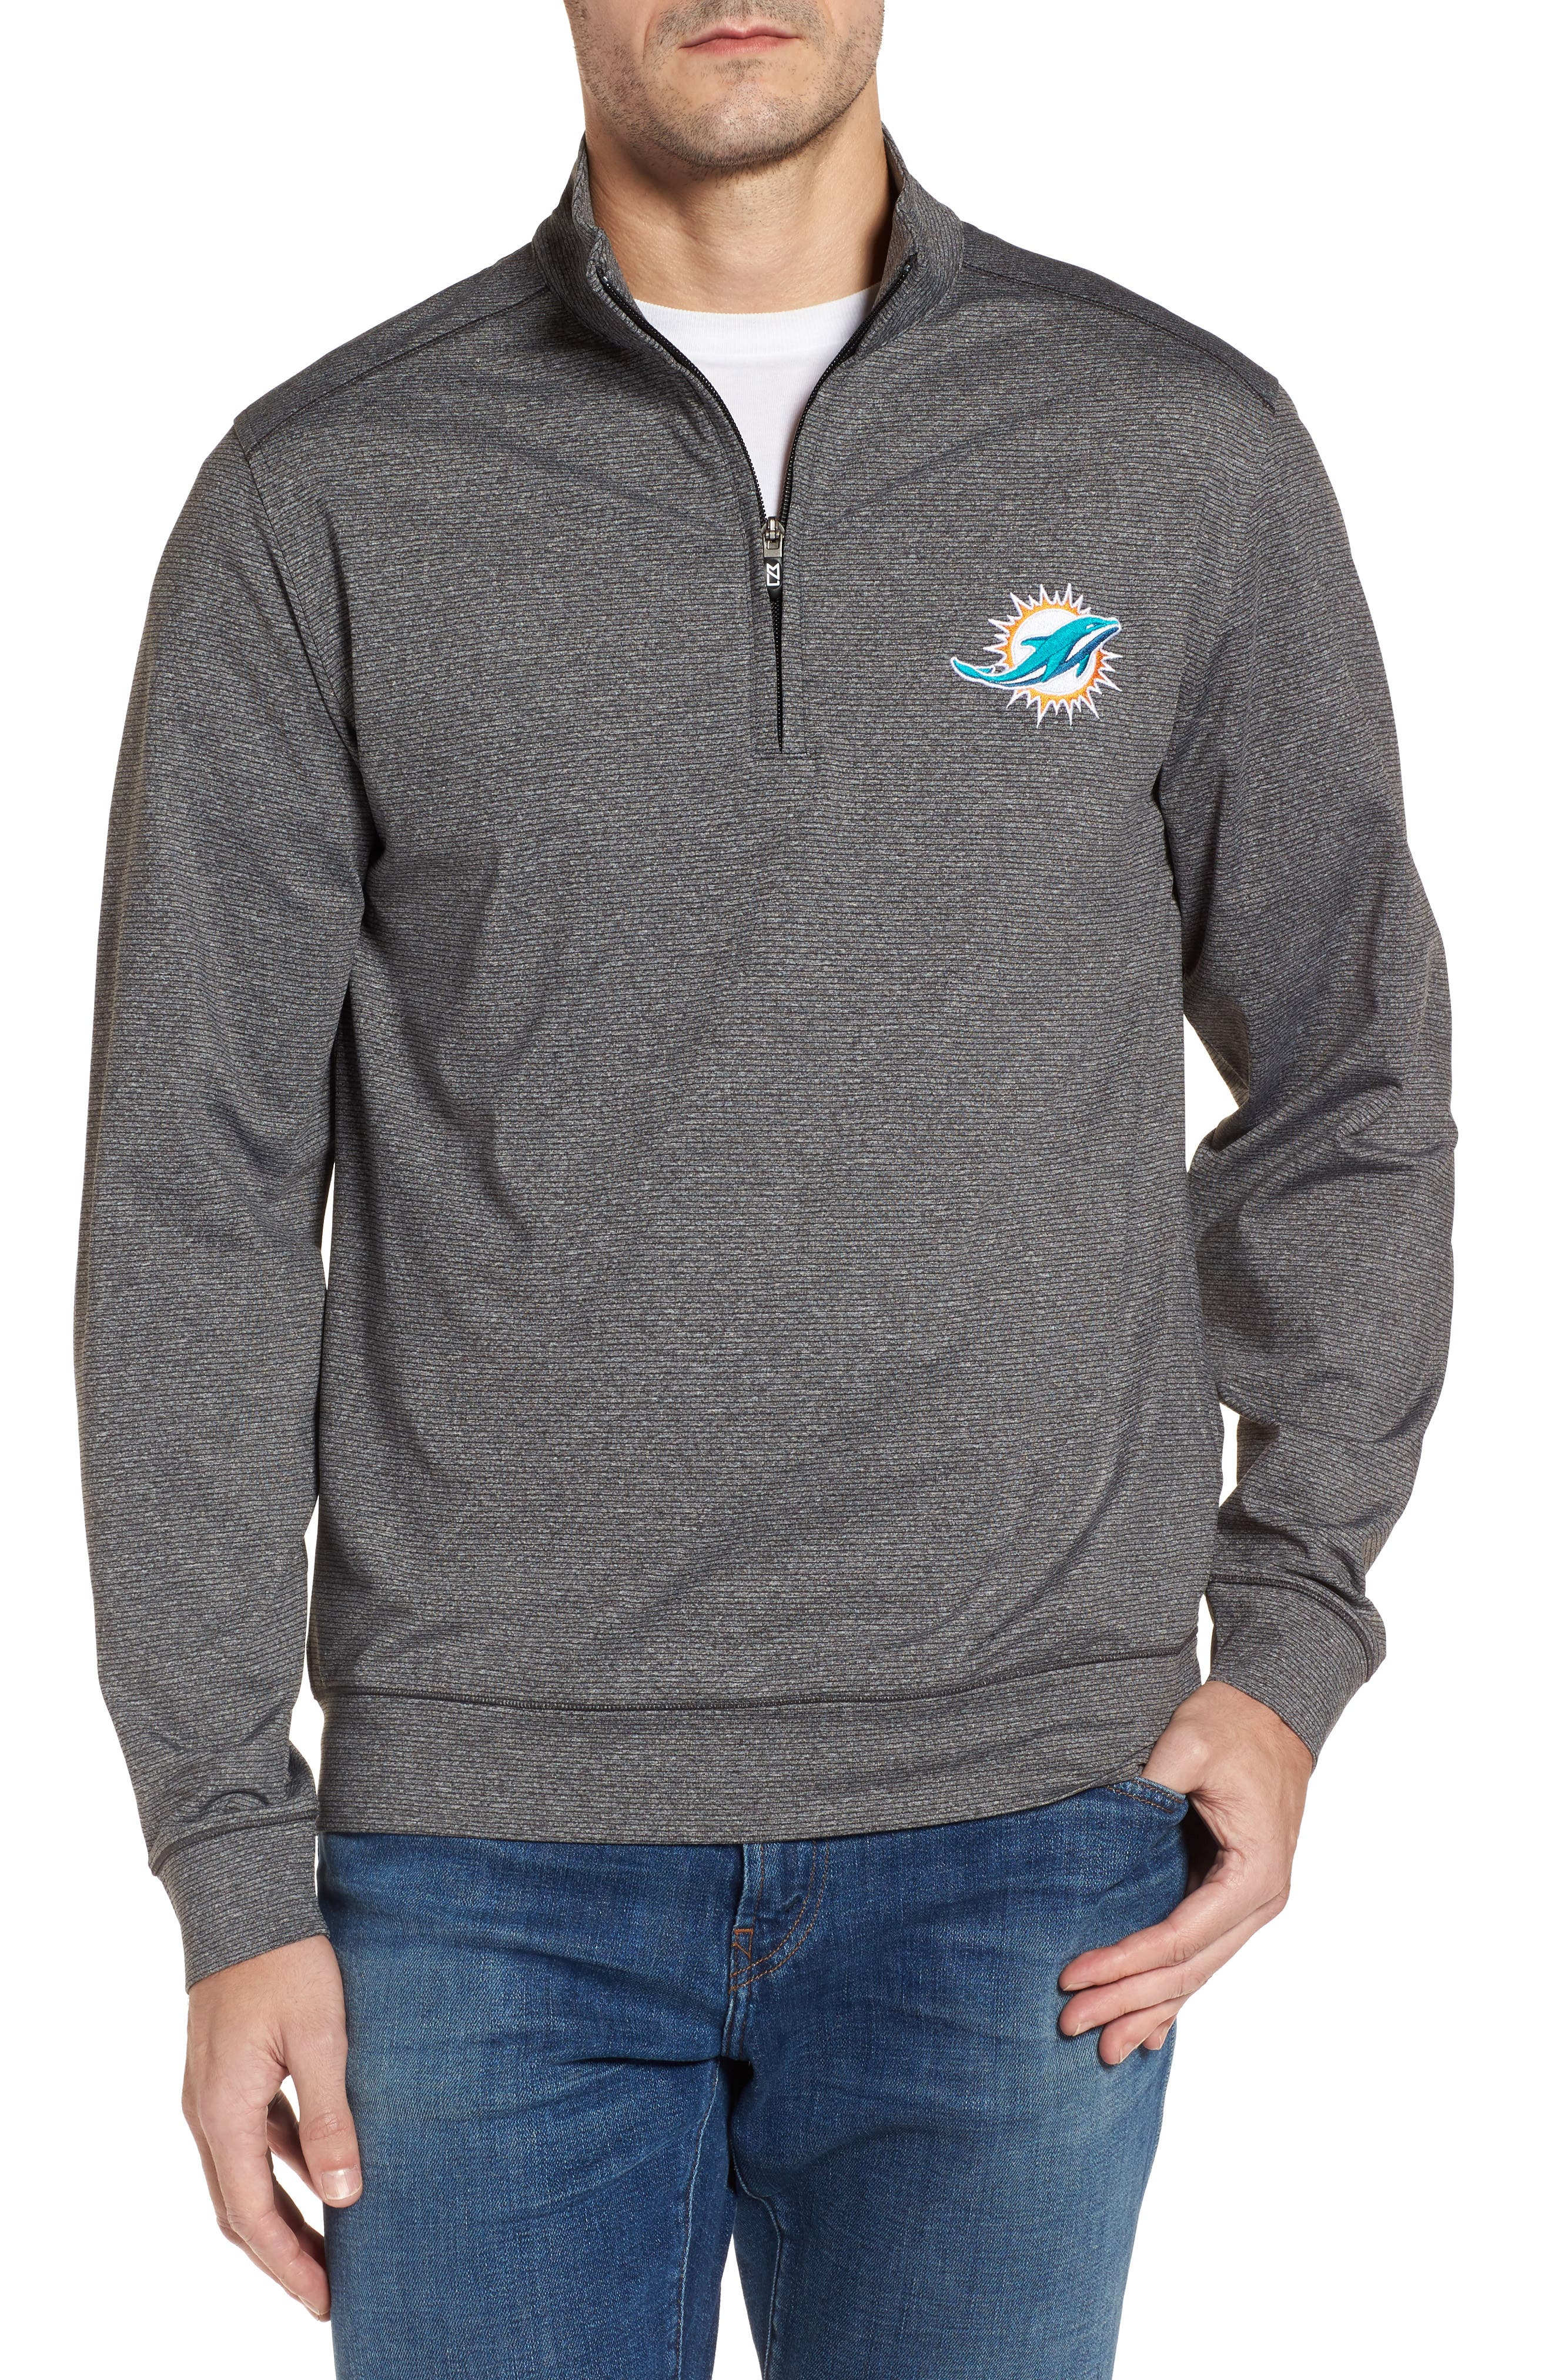 Cutter & Butter Shoreline - Miami Dolphins Half Zip Pullover